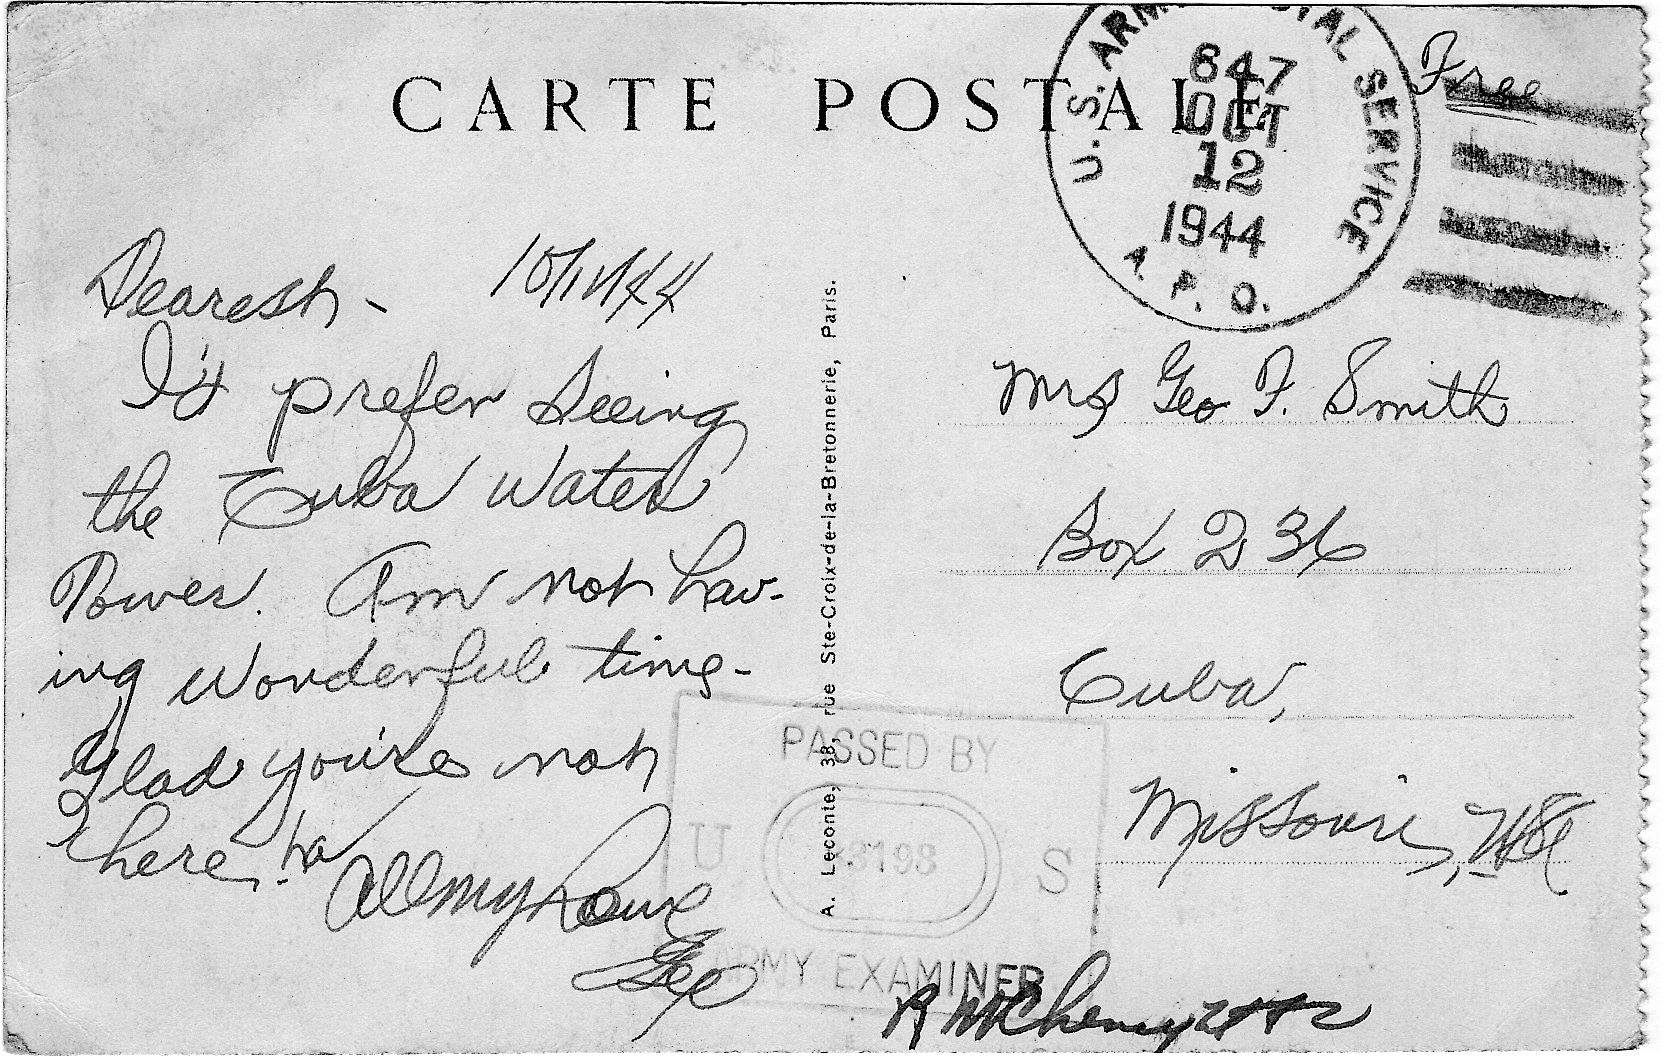 WWII Postcard From Paris France Cuba MO Route 66